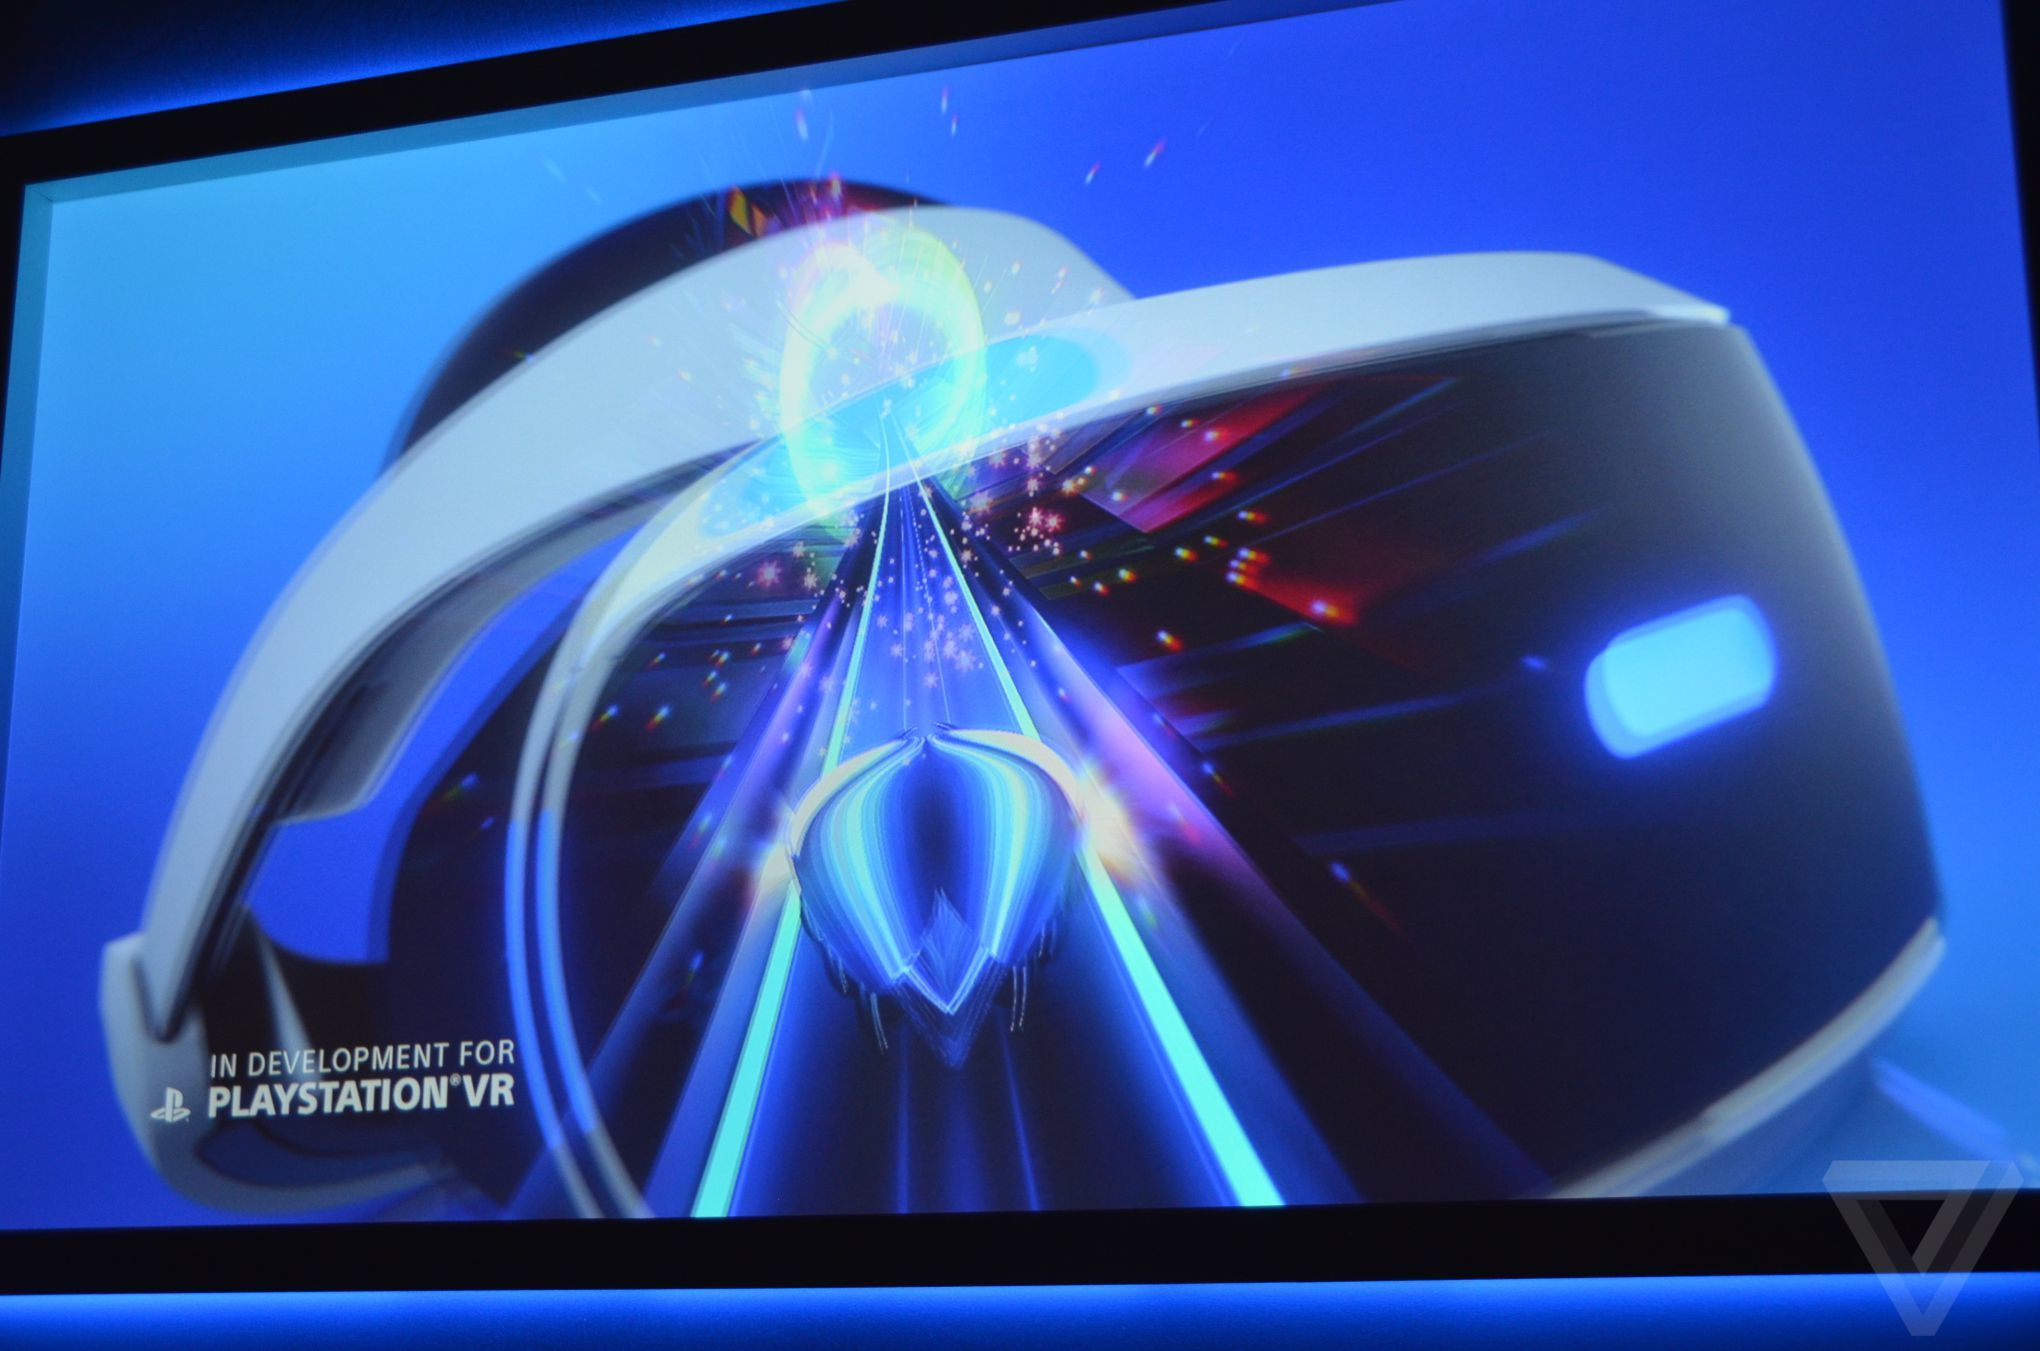 First look at Sony's new PlayStation VR headset - The Verge